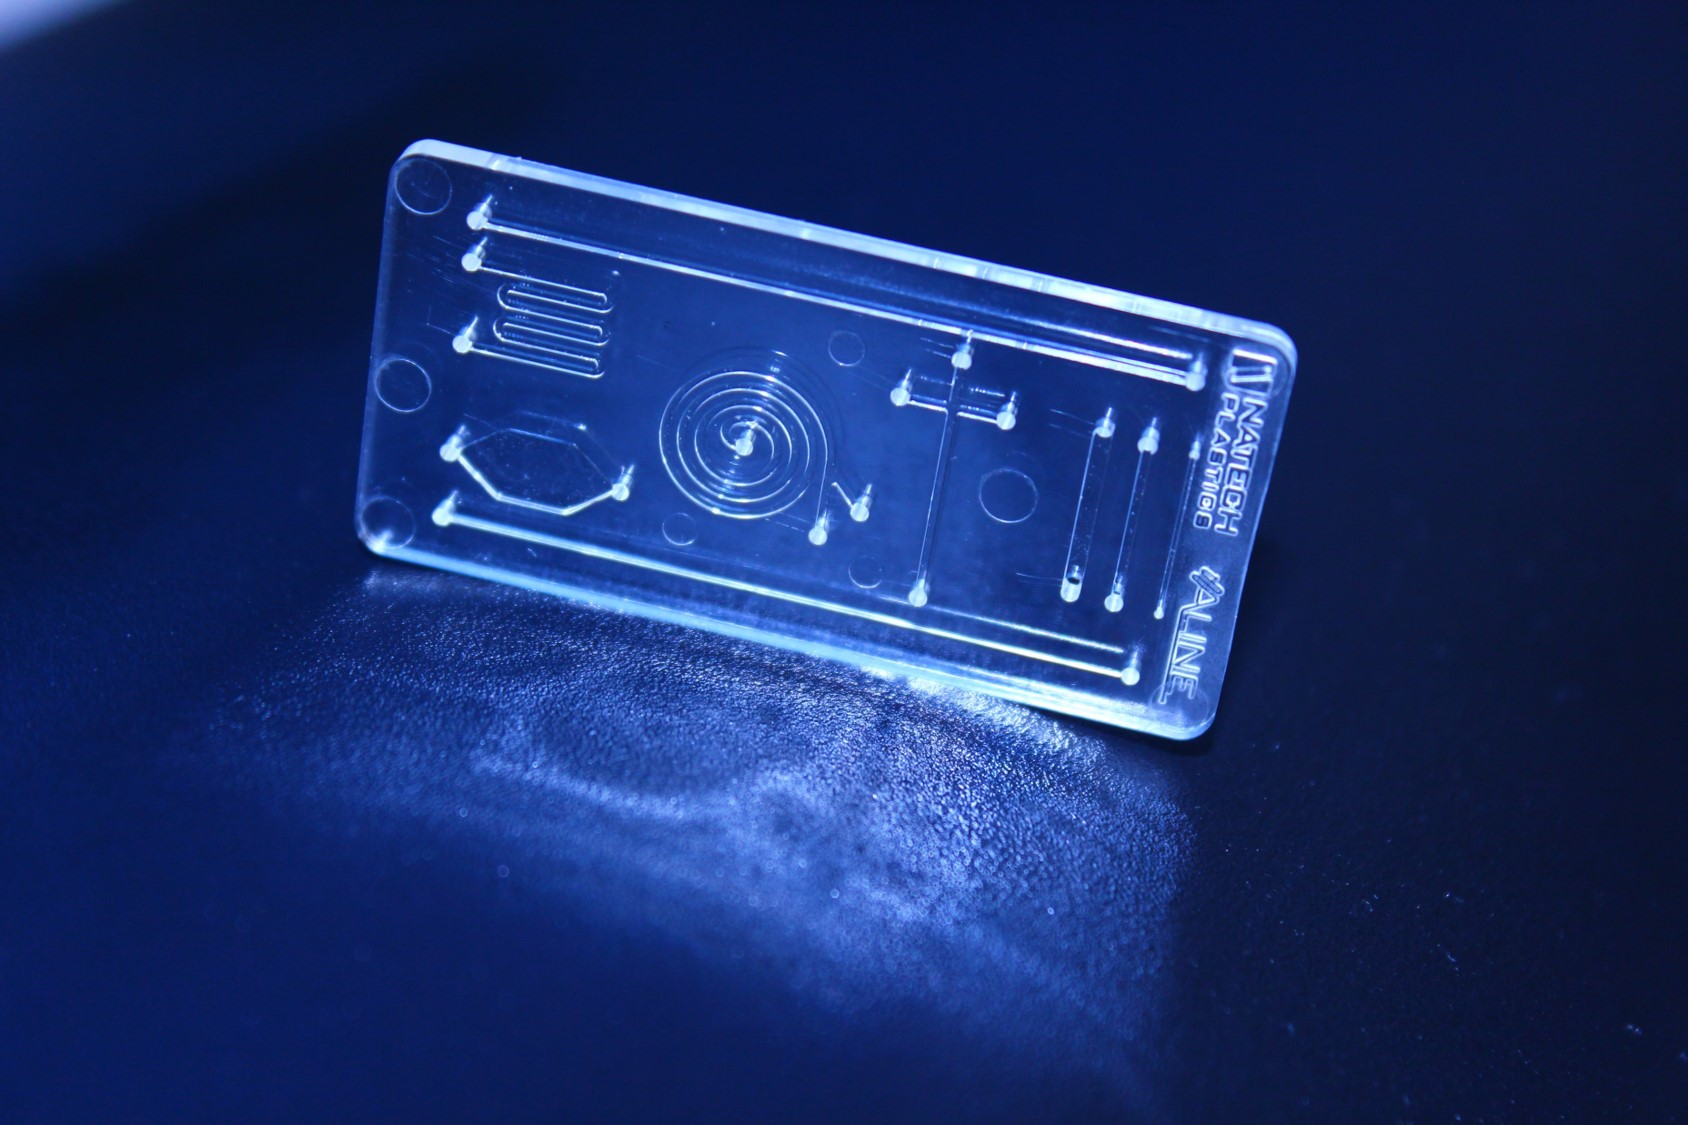 Microfluidics: Breaking the Rules to Achieve Scale